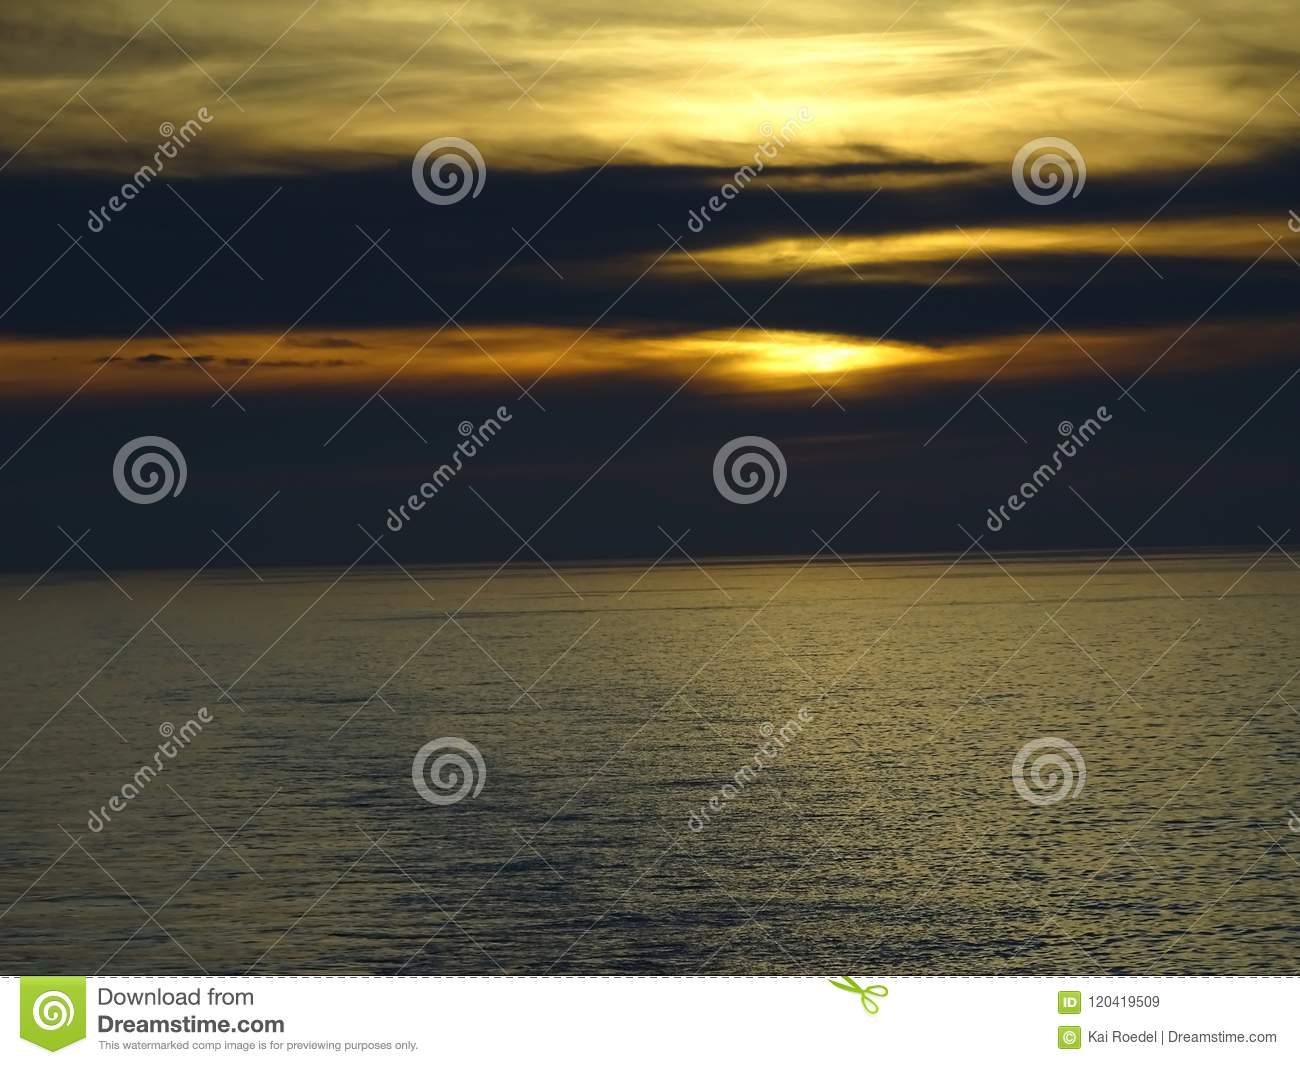 The sun sinks in the sea